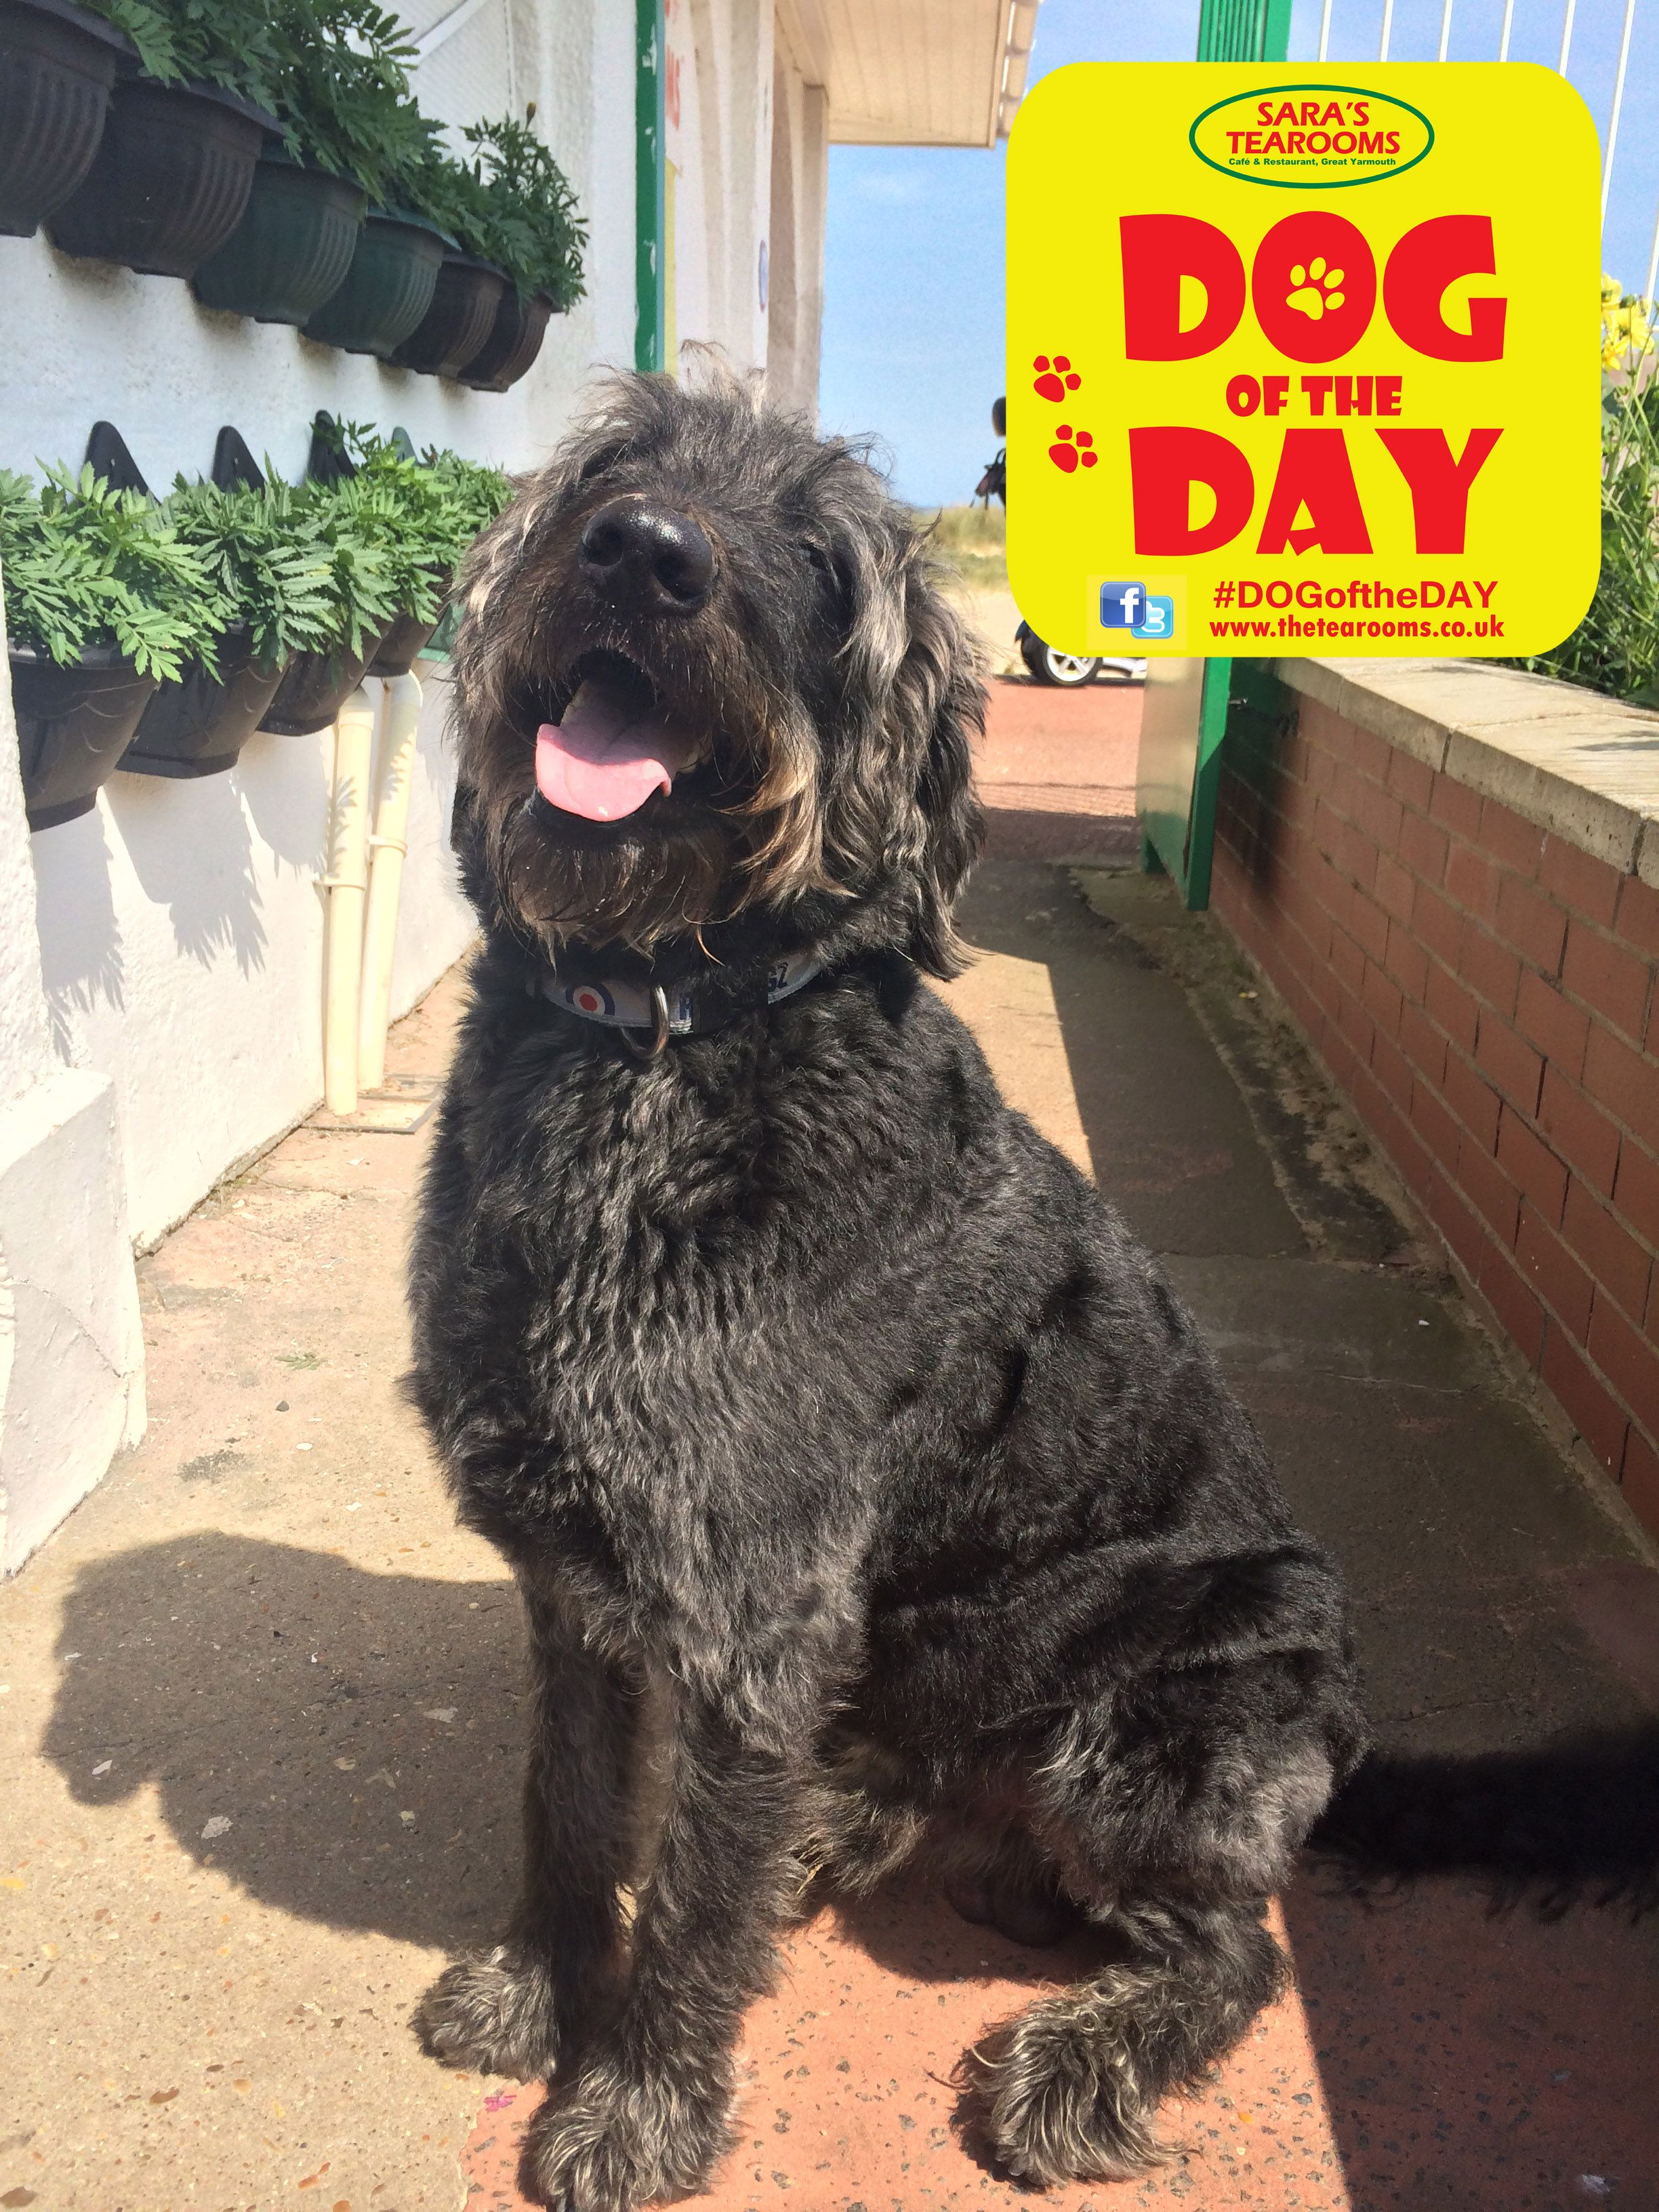 Dog of the day with images dog days dogs dog friends